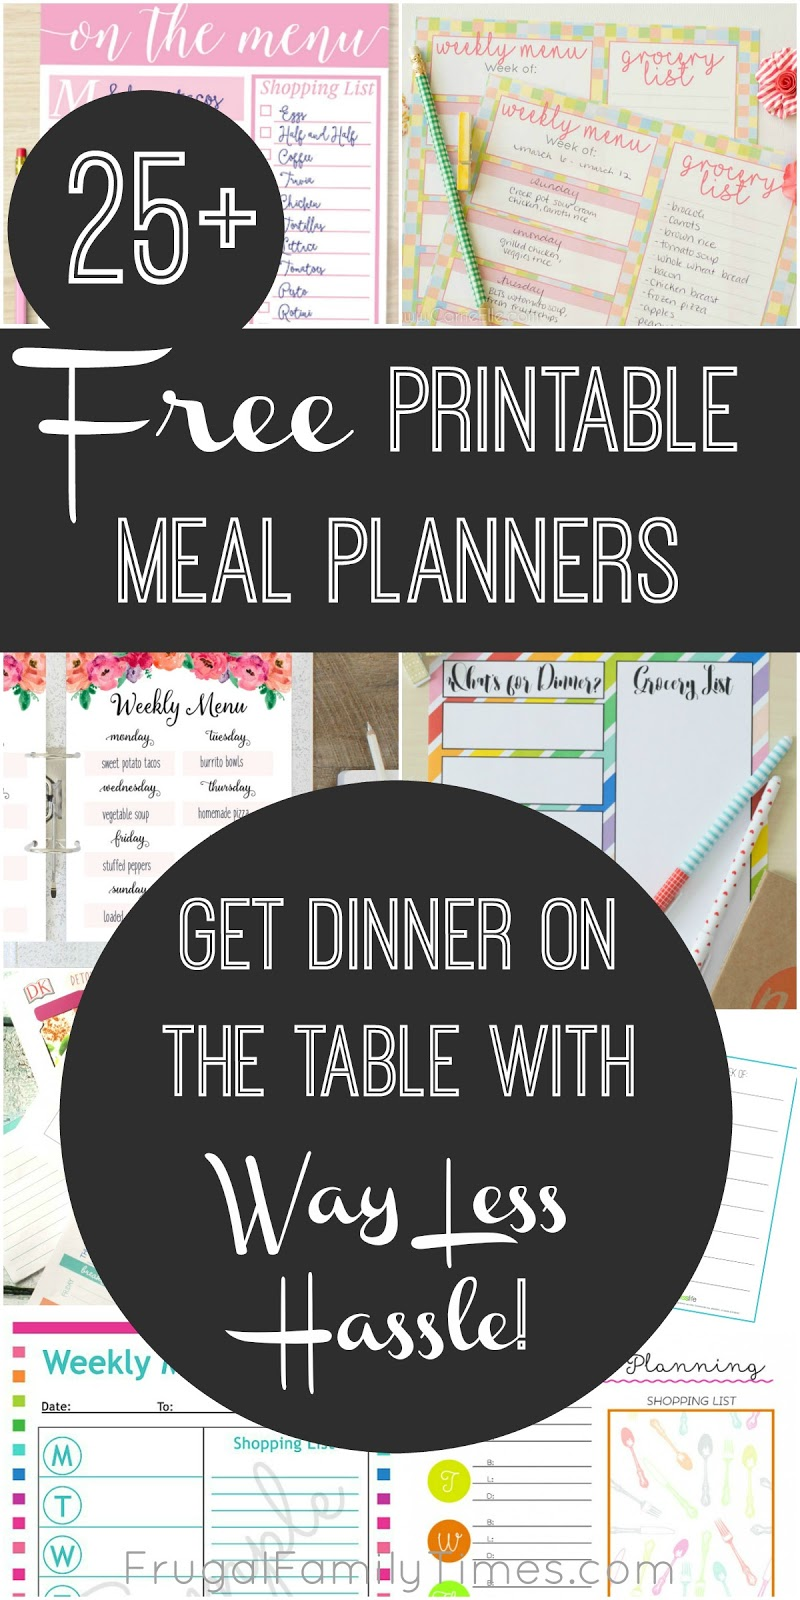 Get Dinner on the Table With Way Less Hassle: 25+ Free Meal Plan ...